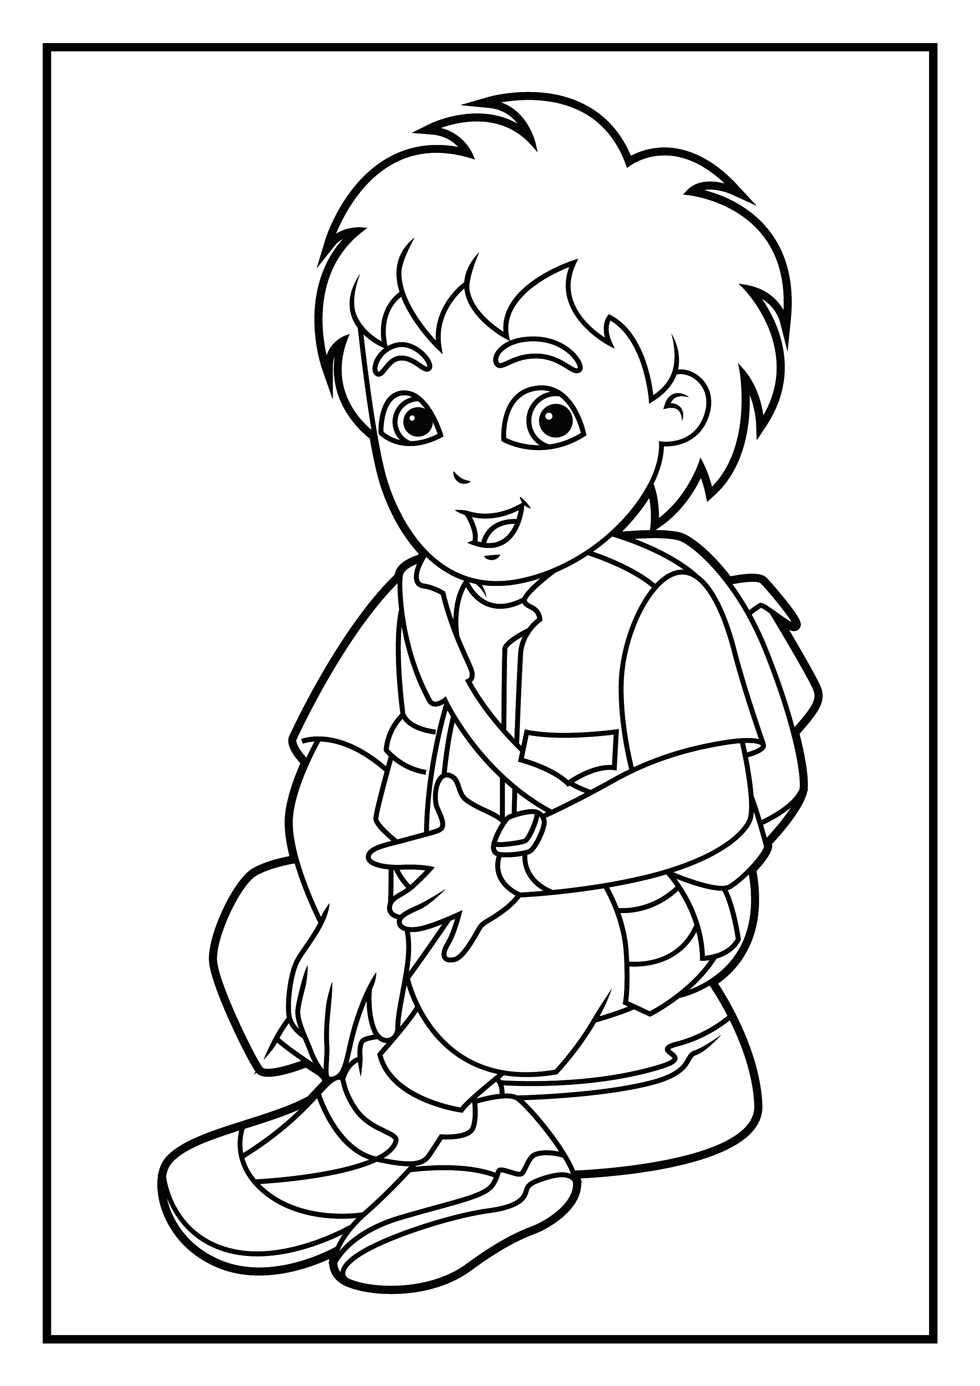 980x1386 Dora Coloring Pages Diego Coloring Pages Diego Coloring Pages